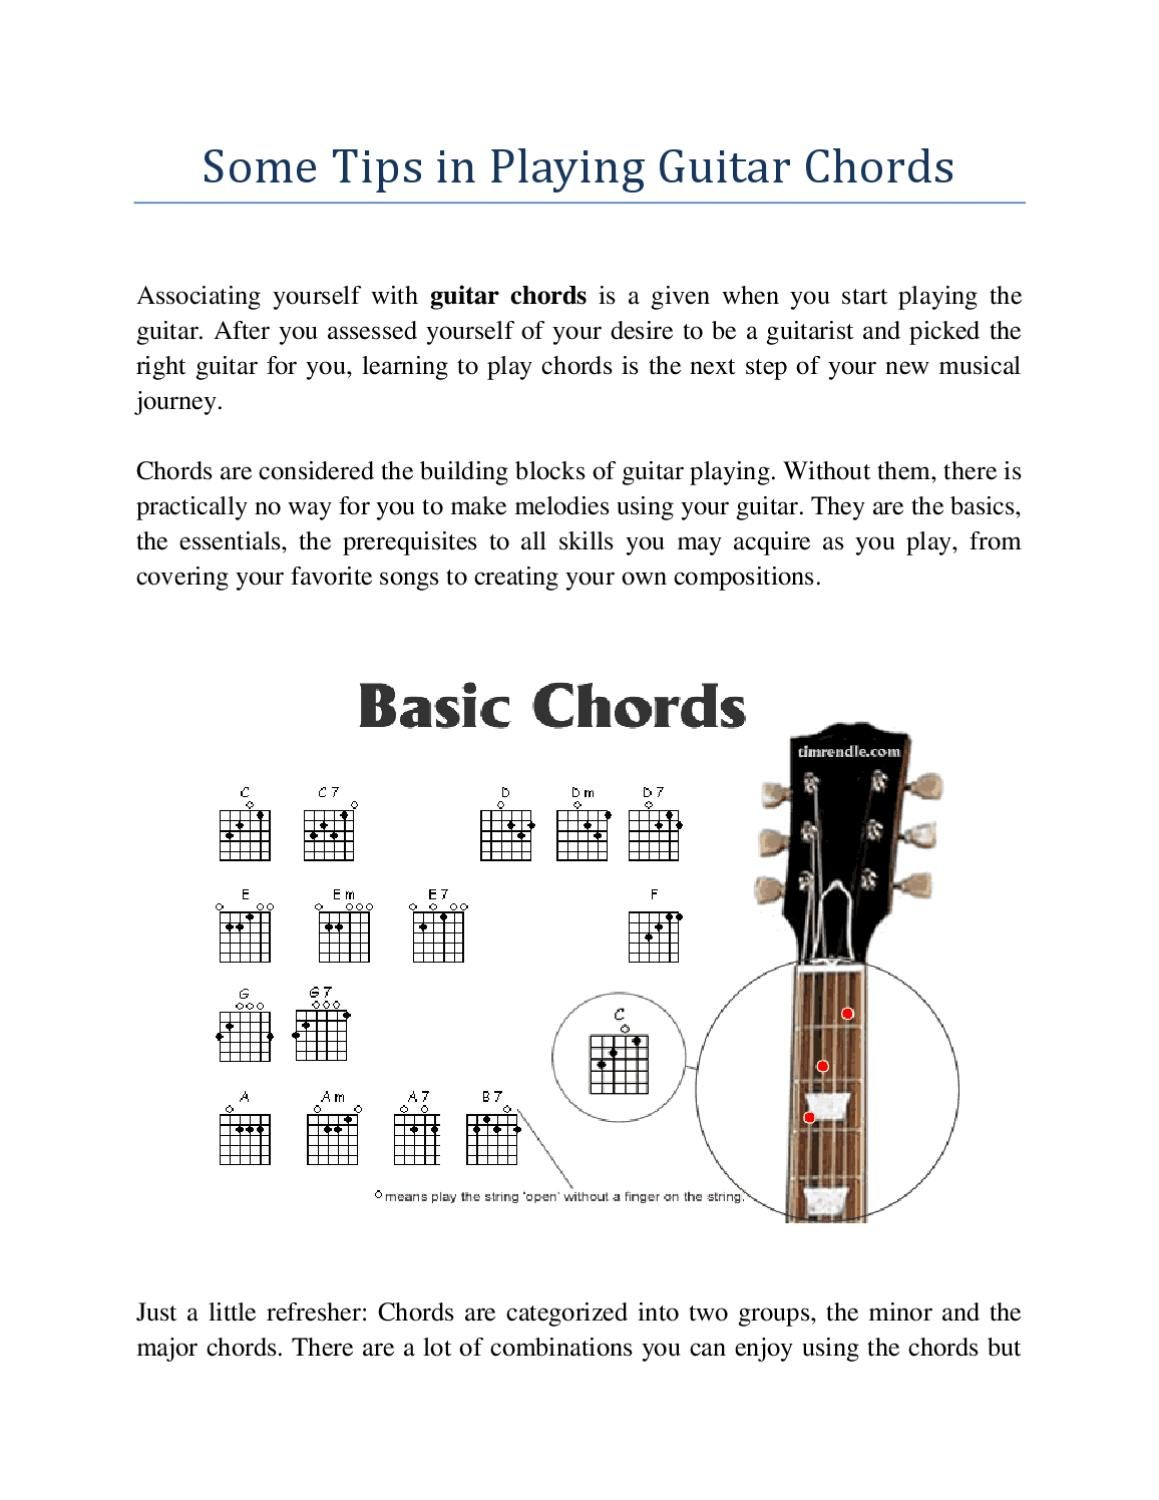 Some tips in playing guitar chords by cindee daniel issuu hexwebz Choice Image